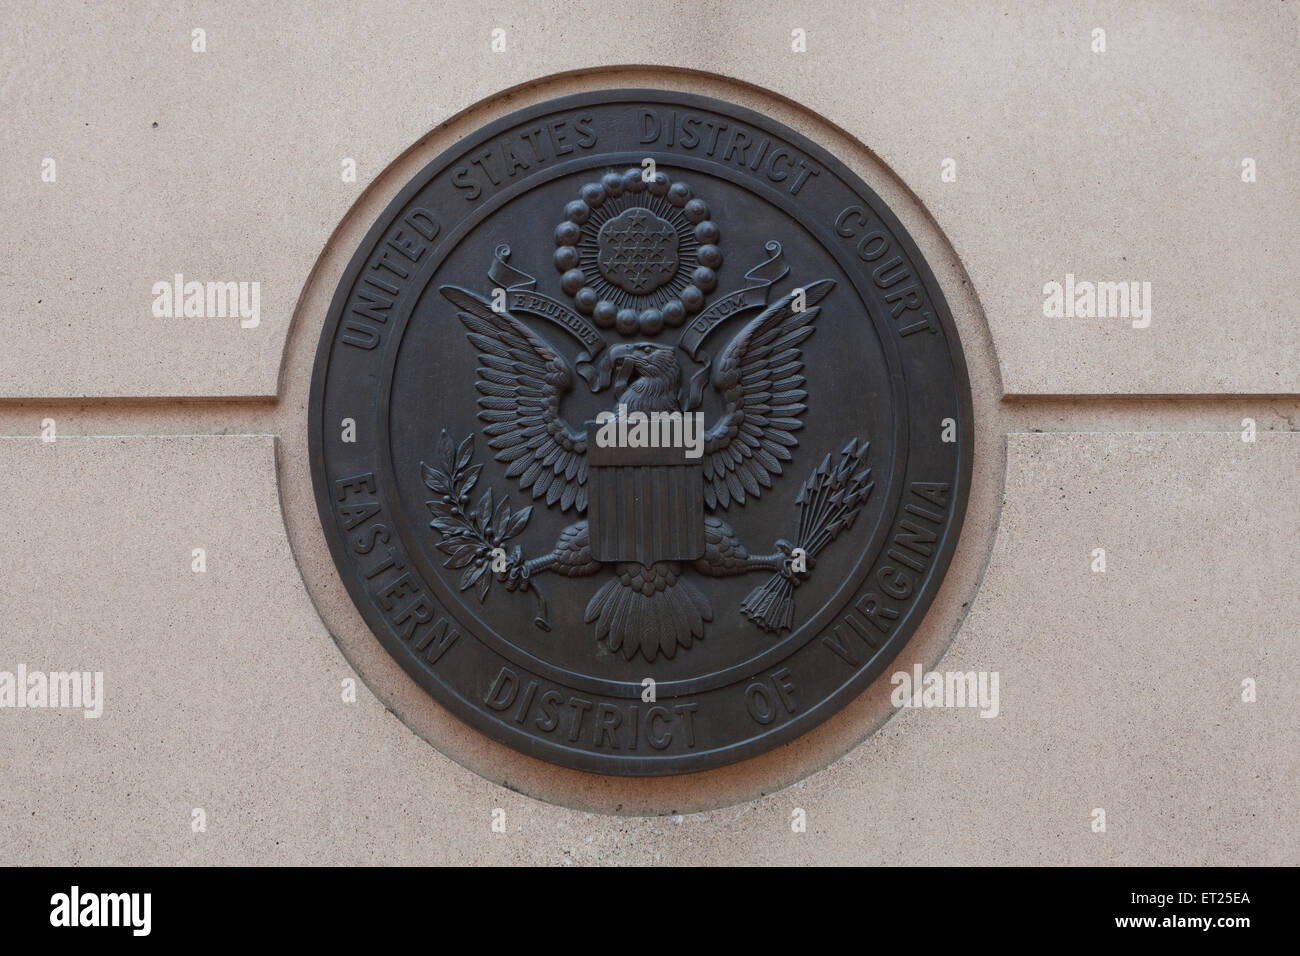 The Great Seal of the United States at the US District Court Eastern District of Virginia - Alexandria, Virginia - Stock Image